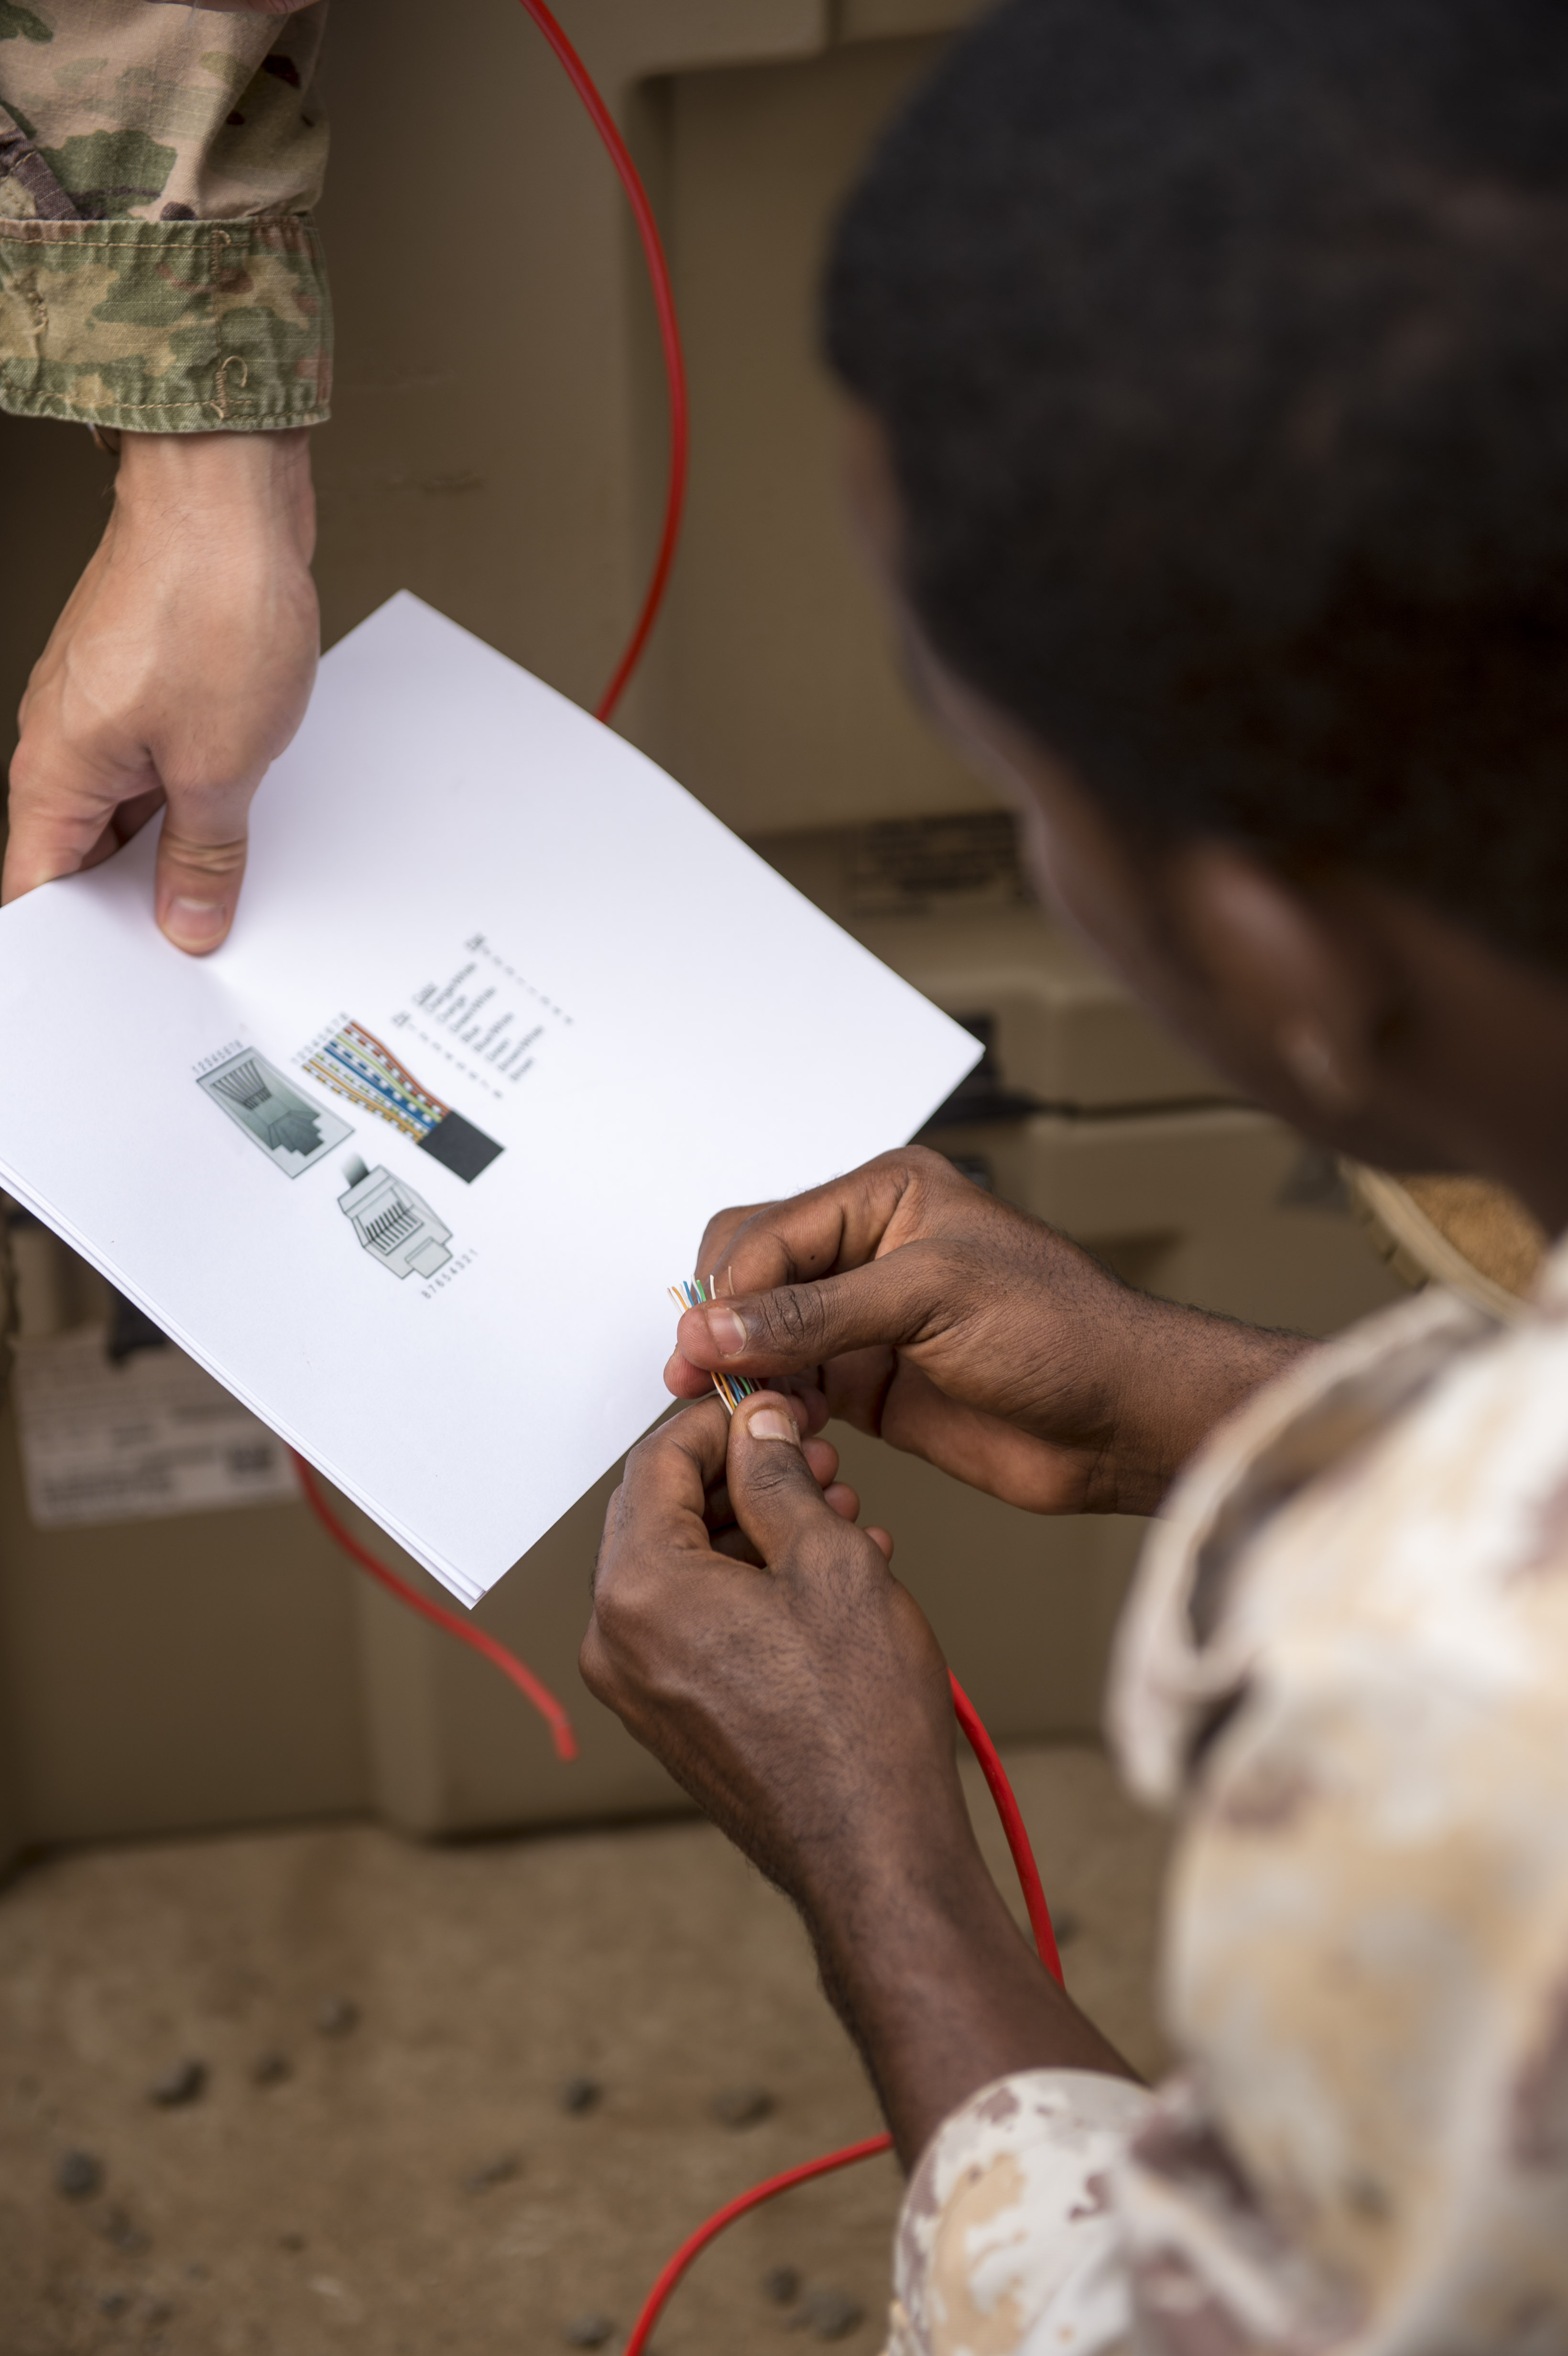 A Djibouti Armed Forces (FAD) member reviews a guide to set up the wires for a cable during a military-to-military exchange course with U.S. Soldiers assigned to the Combined Joint Task Force - Horn of Africa (CJTF-HOA) Communications Directorate, at Camp Lemonnier, Djibouti, Jan. 10, 2018. Throughout a two-week period, communications experts advised Djiboutian service members on how to set up, operate, maintain, and troubleshoot network equipment to increase communication capabilities between African Union Mission in Somalia forces. (U.S. Air Force photo by Staff Sgt. Timothy Moore)